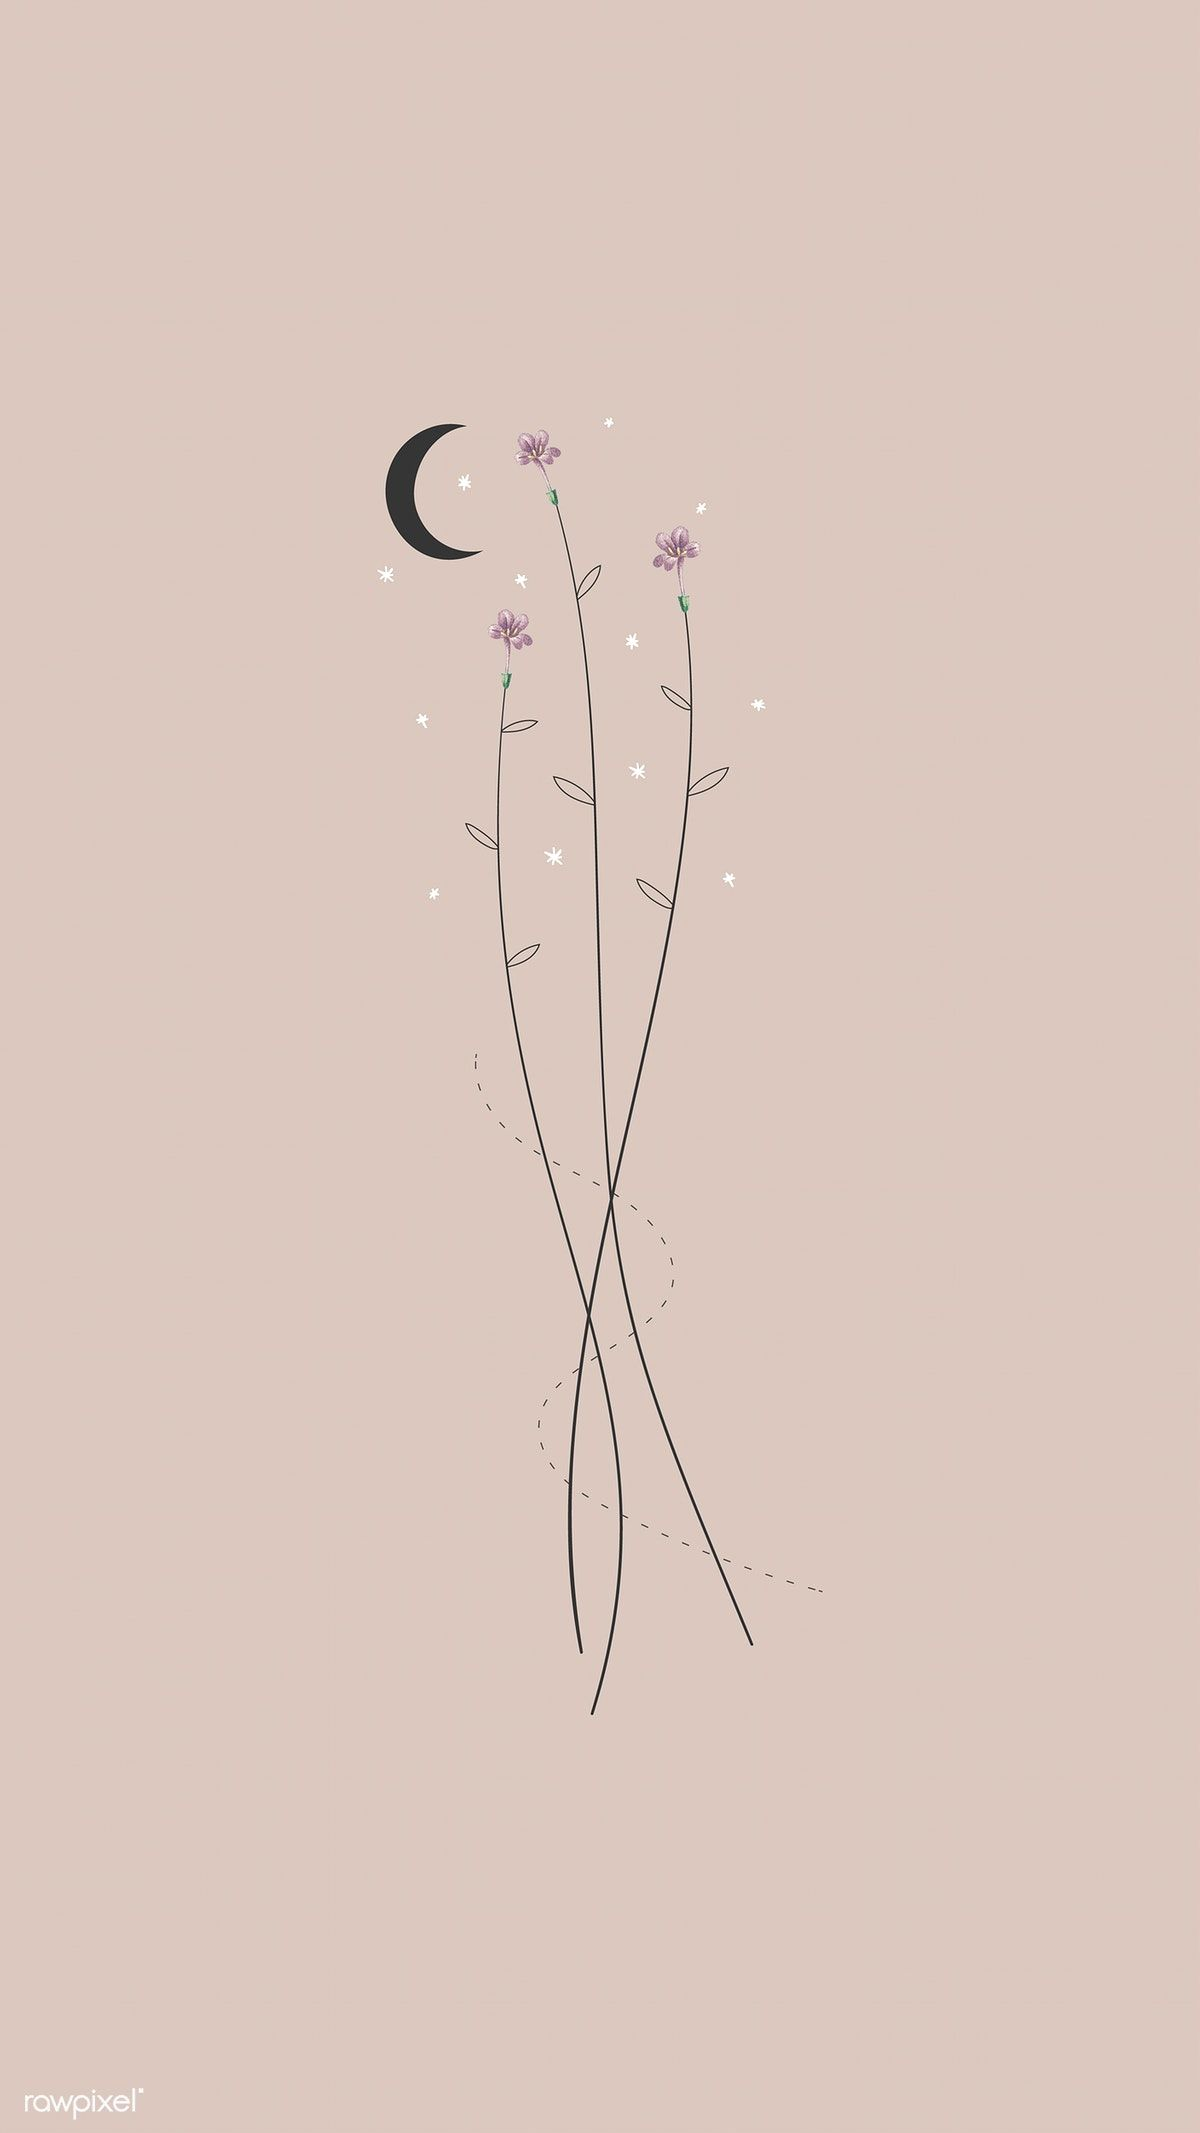 Flowers And The Moon Mobile Phone Wallpaper Vector Premium Image By Rawpixel Com Mar Wallpaper Iphone Boho Simple Iphone Wallpaper Iphone Wallpaper Hipster